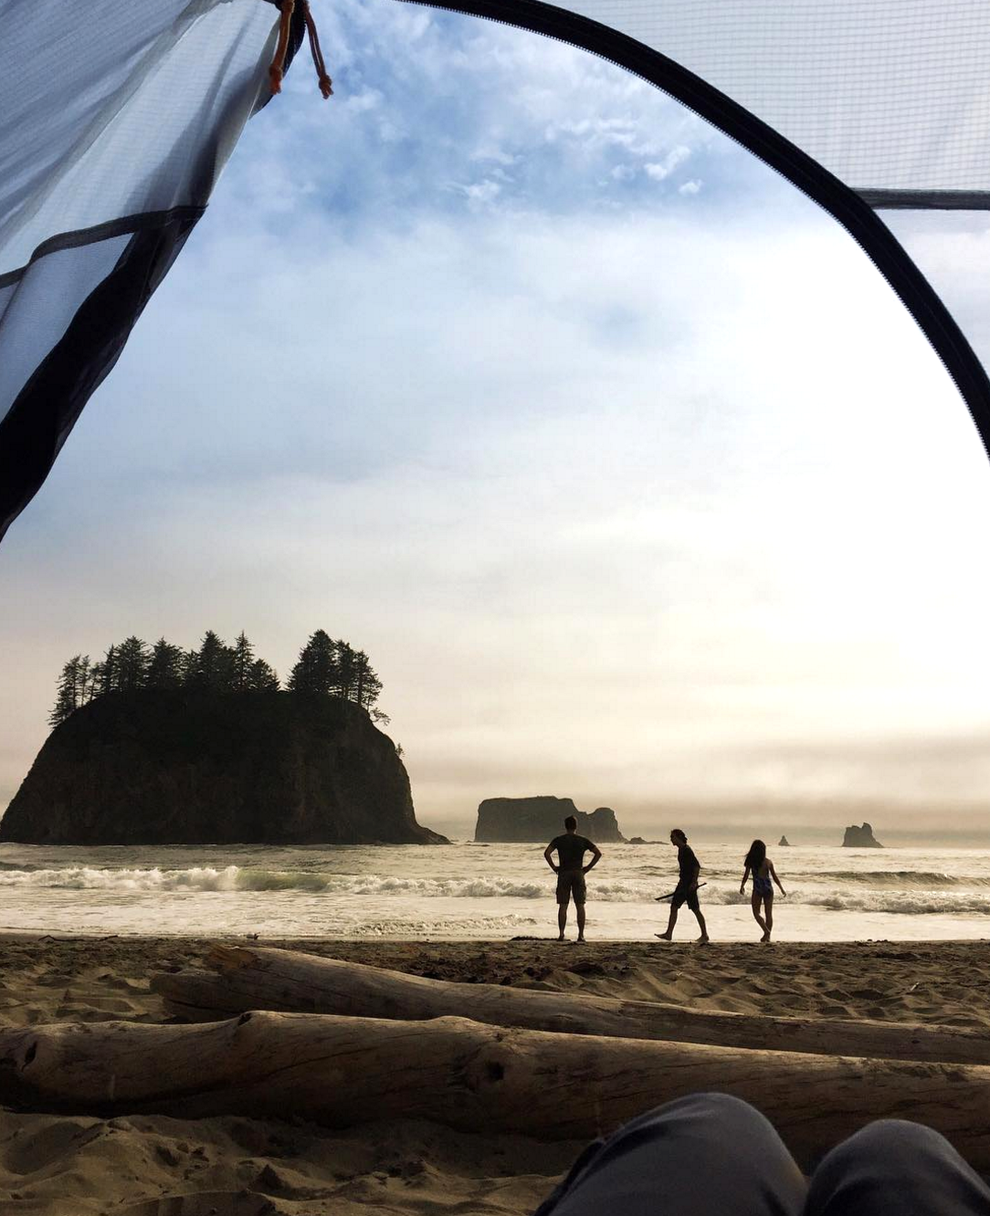 This dreamlike vision on the beaches of La Push in Washington.